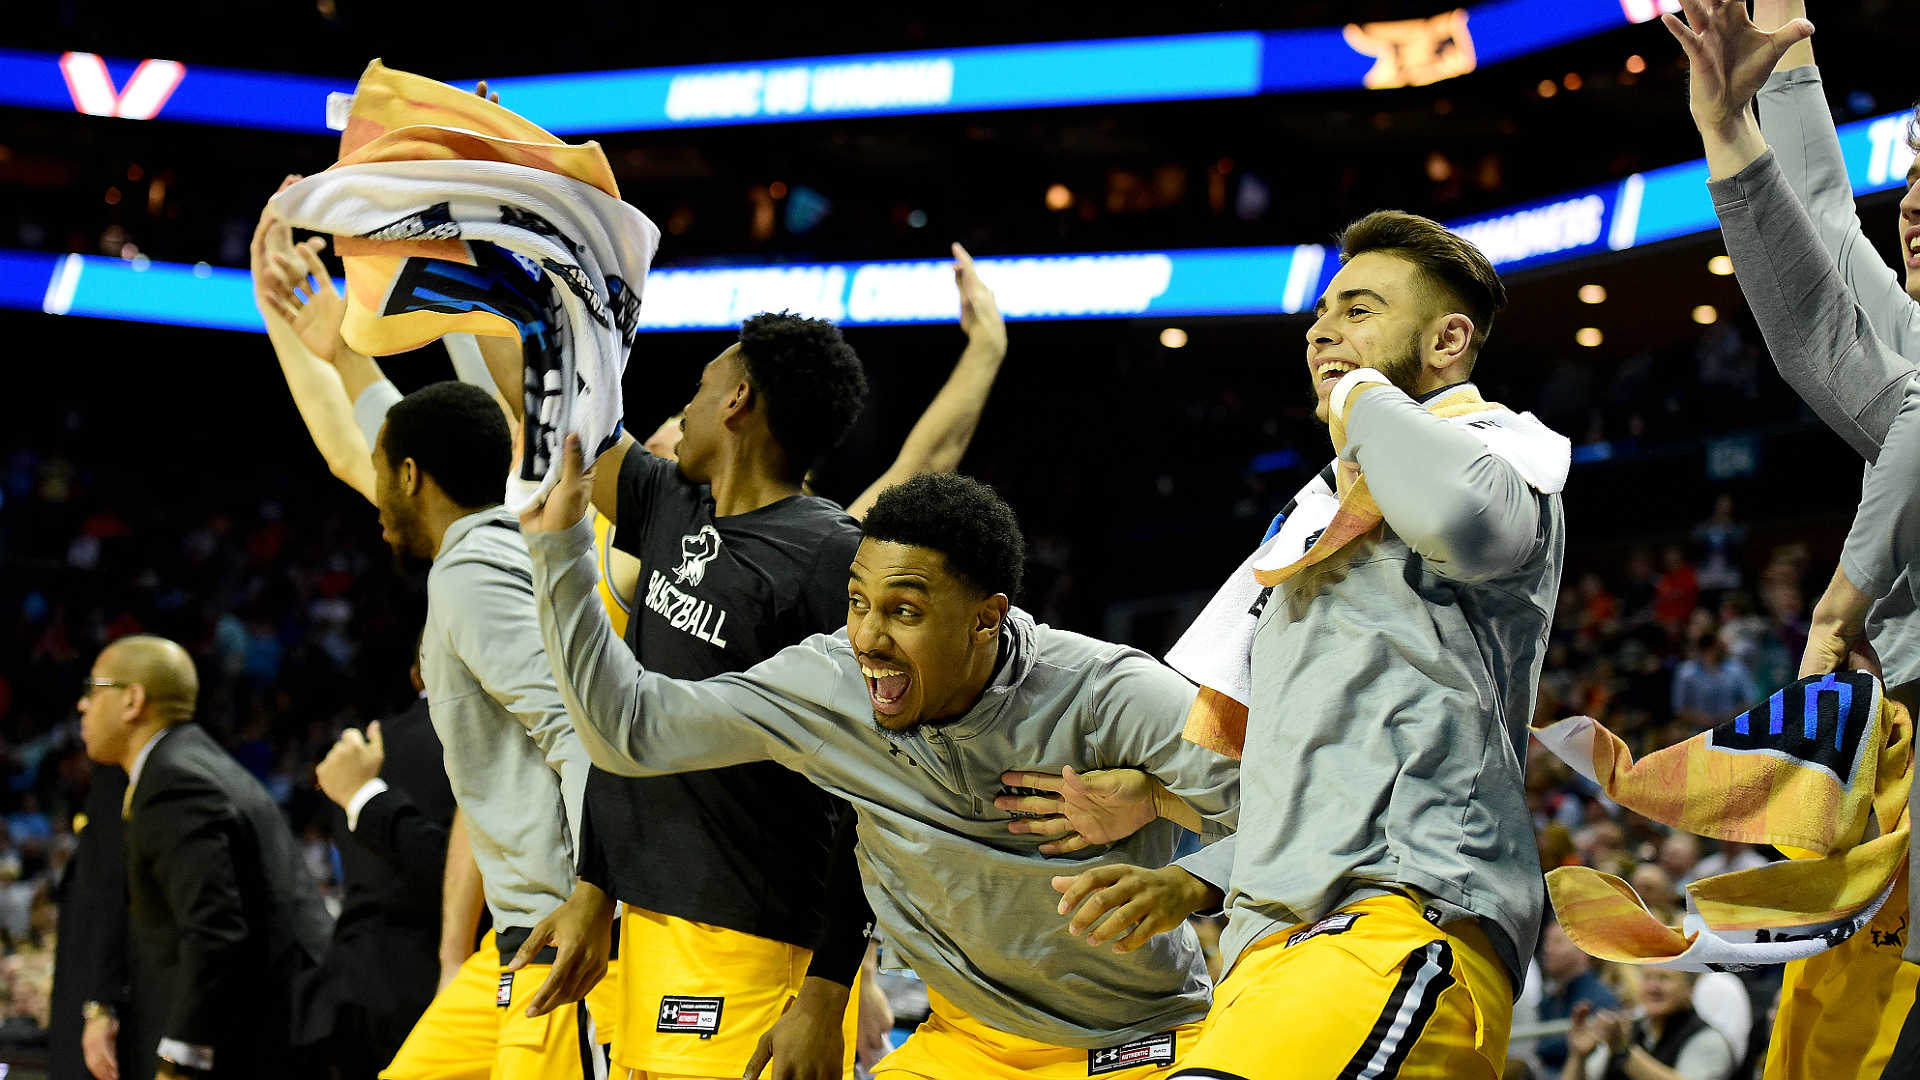 UMBC's magic runs out with heads held high